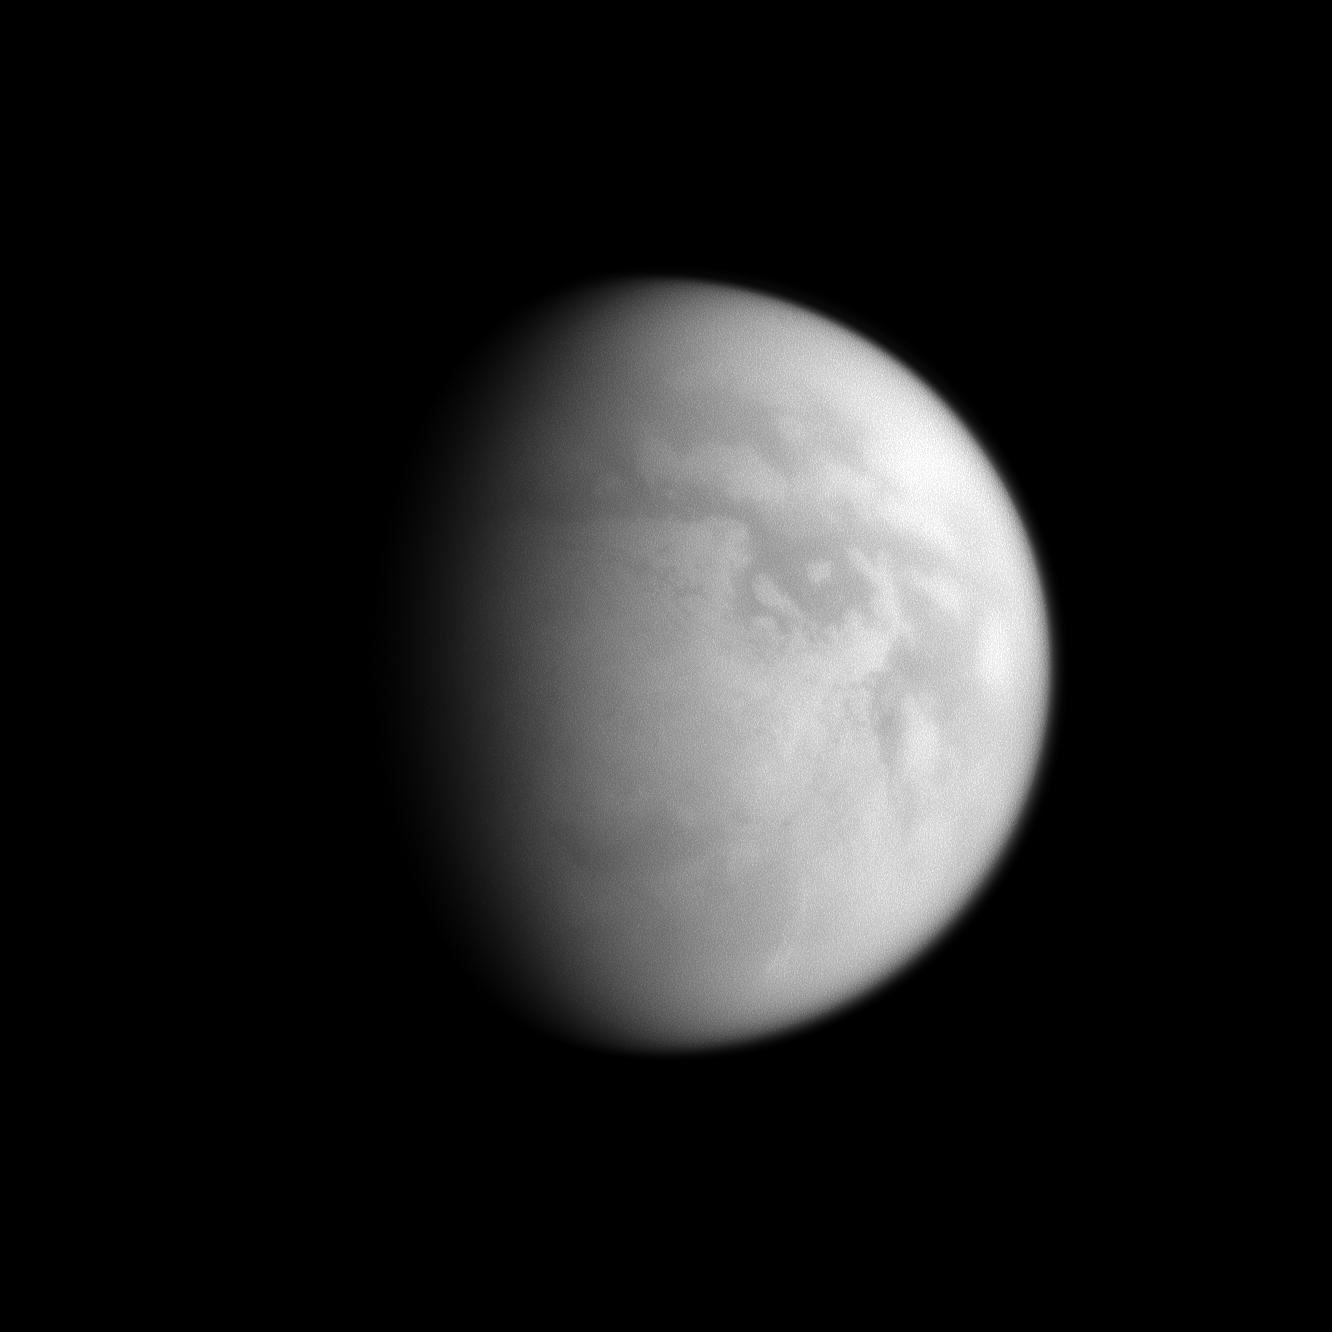 Titan's south polar region